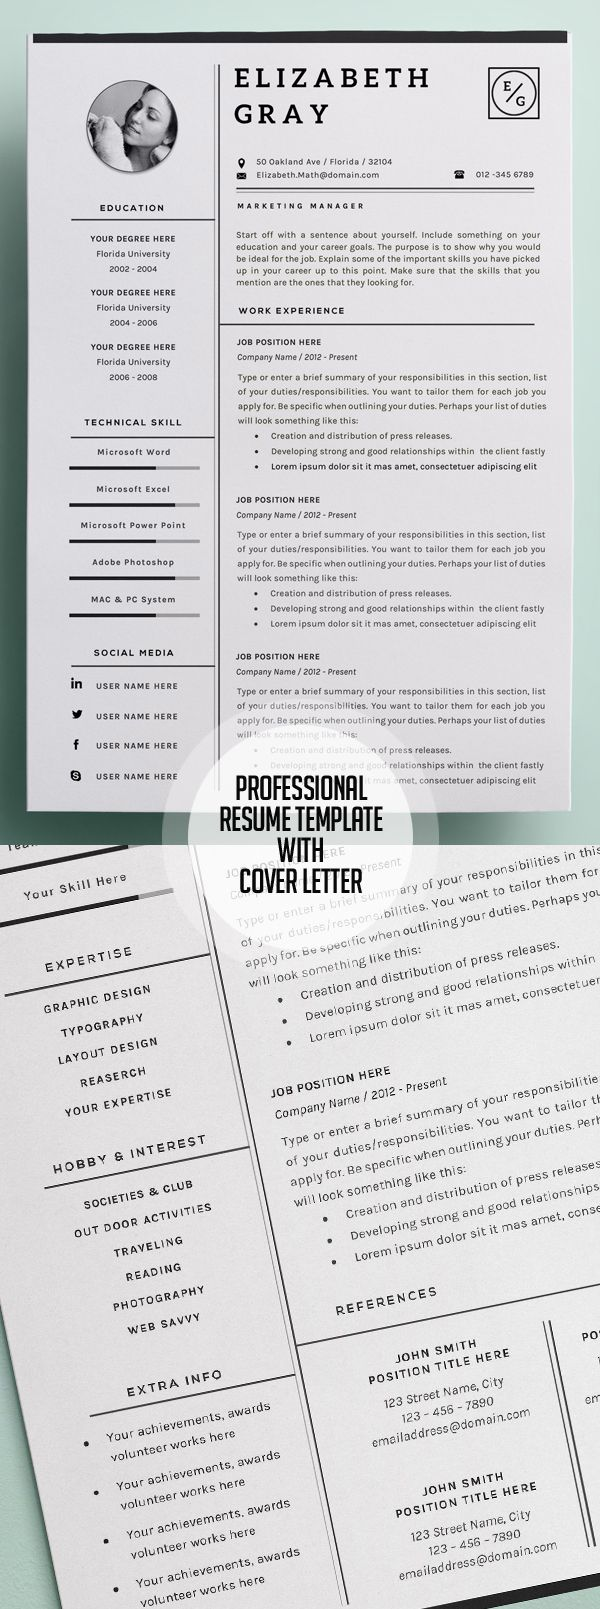 Picnictoimpeachus  Splendid  Resume Ideas On Pinterest  Resume Resume Templates And  With Excellent Professional And Modern Resume Template With Page Cover Cvtemplate With Divine Medical Sales Resume Sample Also Resume Examples For Customer Service Position In Addition Up To Date Resume And Resume Taglines As Well As Professional Resume Writers Dallas Additionally Resume Templates That Stand Out From Pinterestcom With Picnictoimpeachus  Excellent  Resume Ideas On Pinterest  Resume Resume Templates And  With Divine Professional And Modern Resume Template With Page Cover Cvtemplate And Splendid Medical Sales Resume Sample Also Resume Examples For Customer Service Position In Addition Up To Date Resume From Pinterestcom